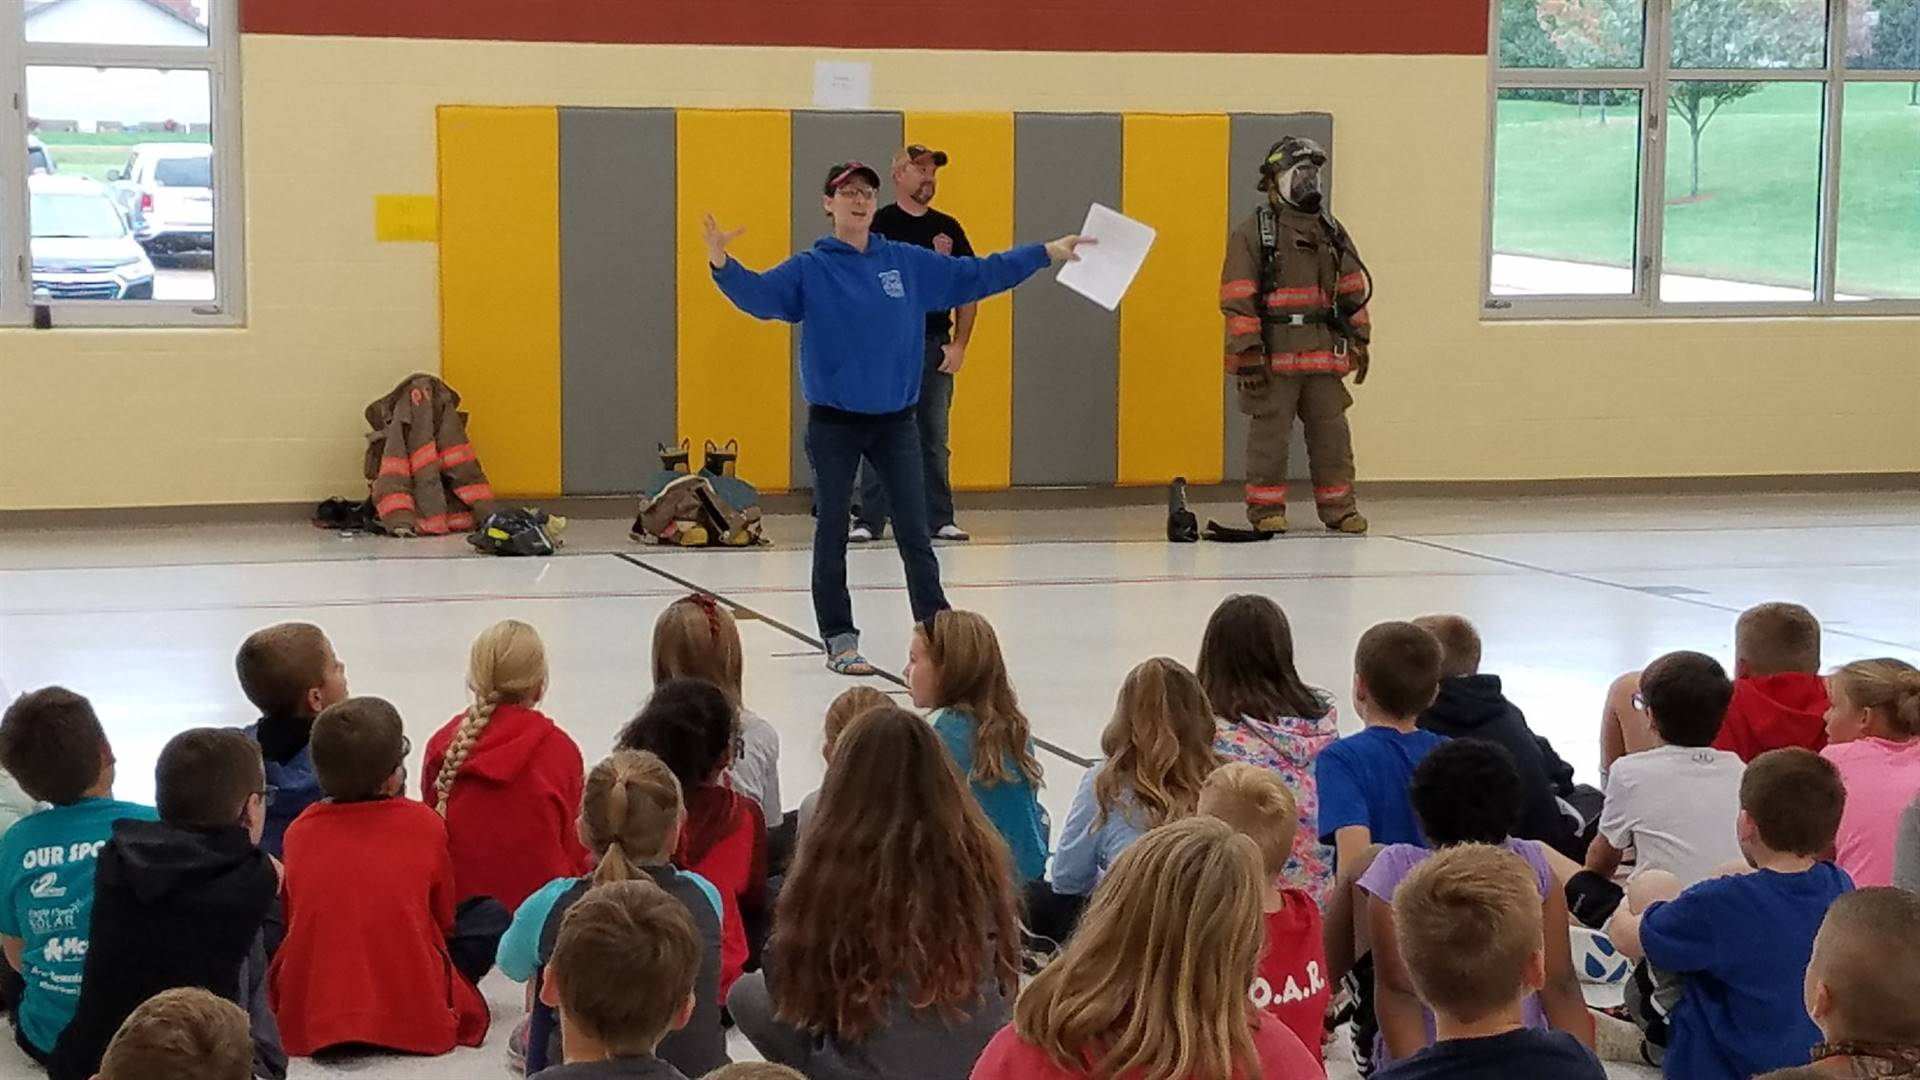 Fire department staff doing safety presentation